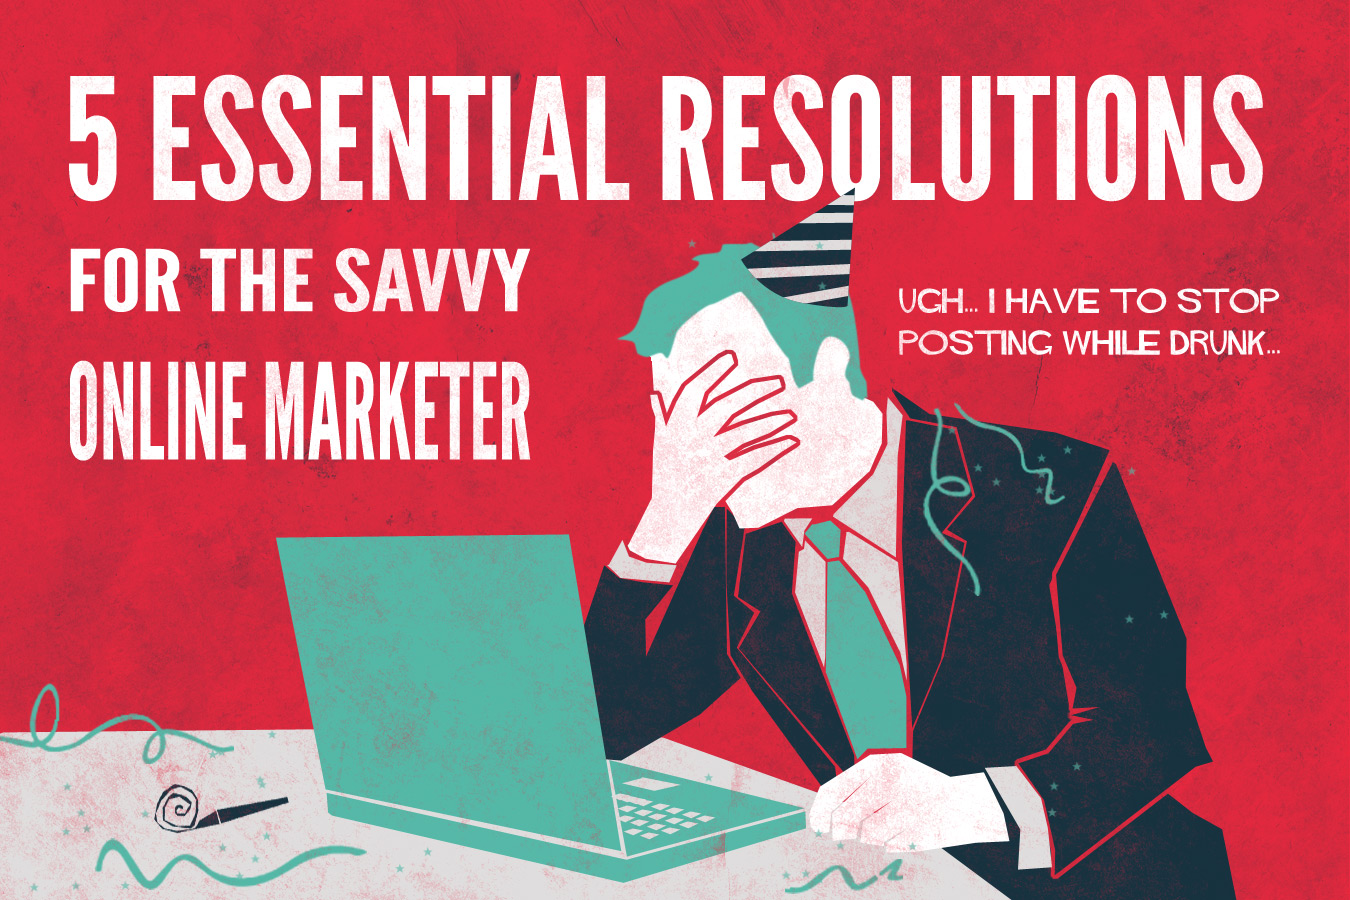 5 Essential Resolutions for the Savvy Online Marketer